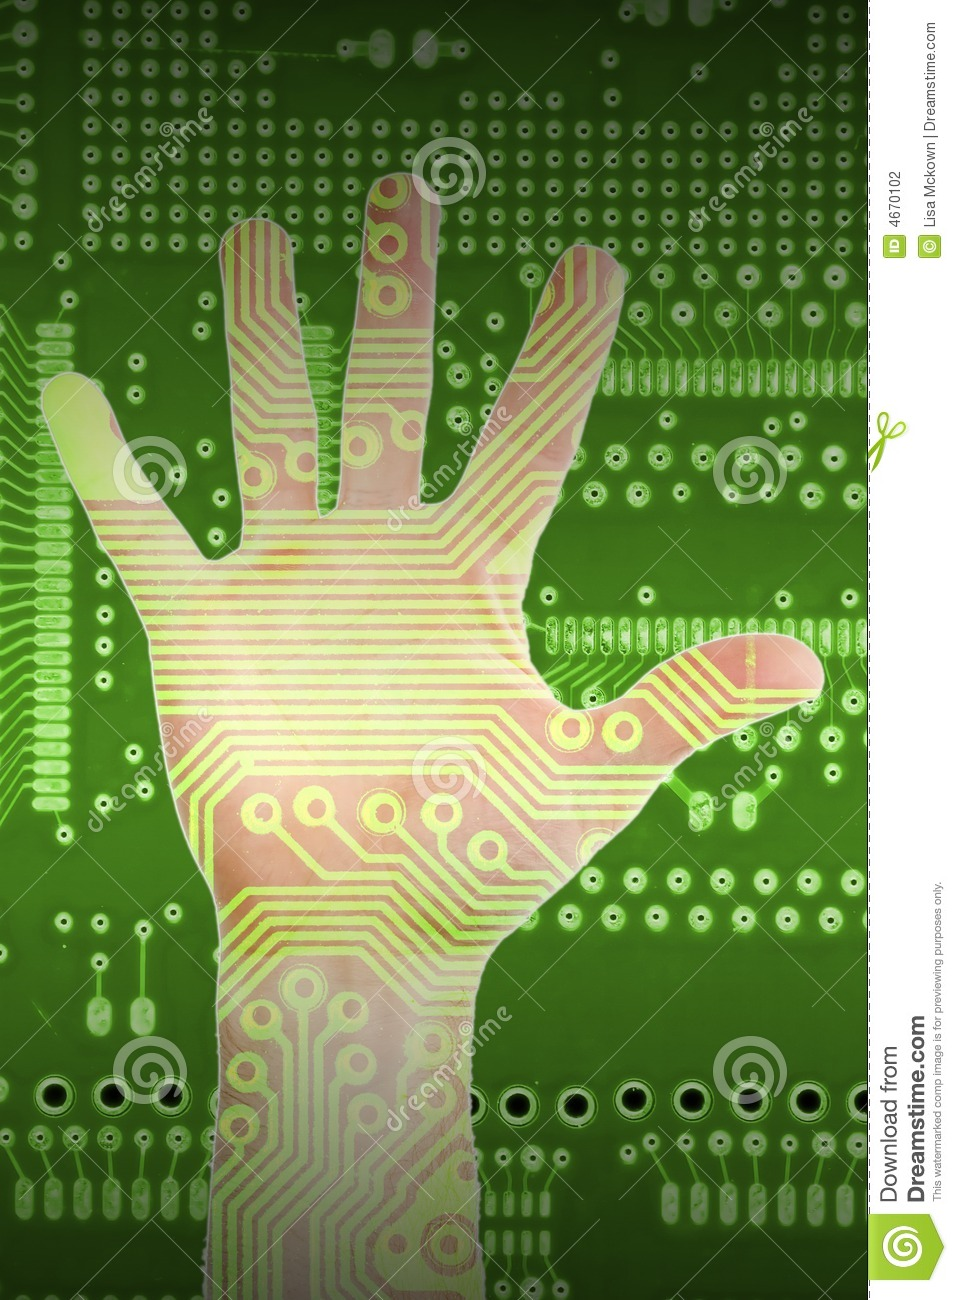 Hand of Technology